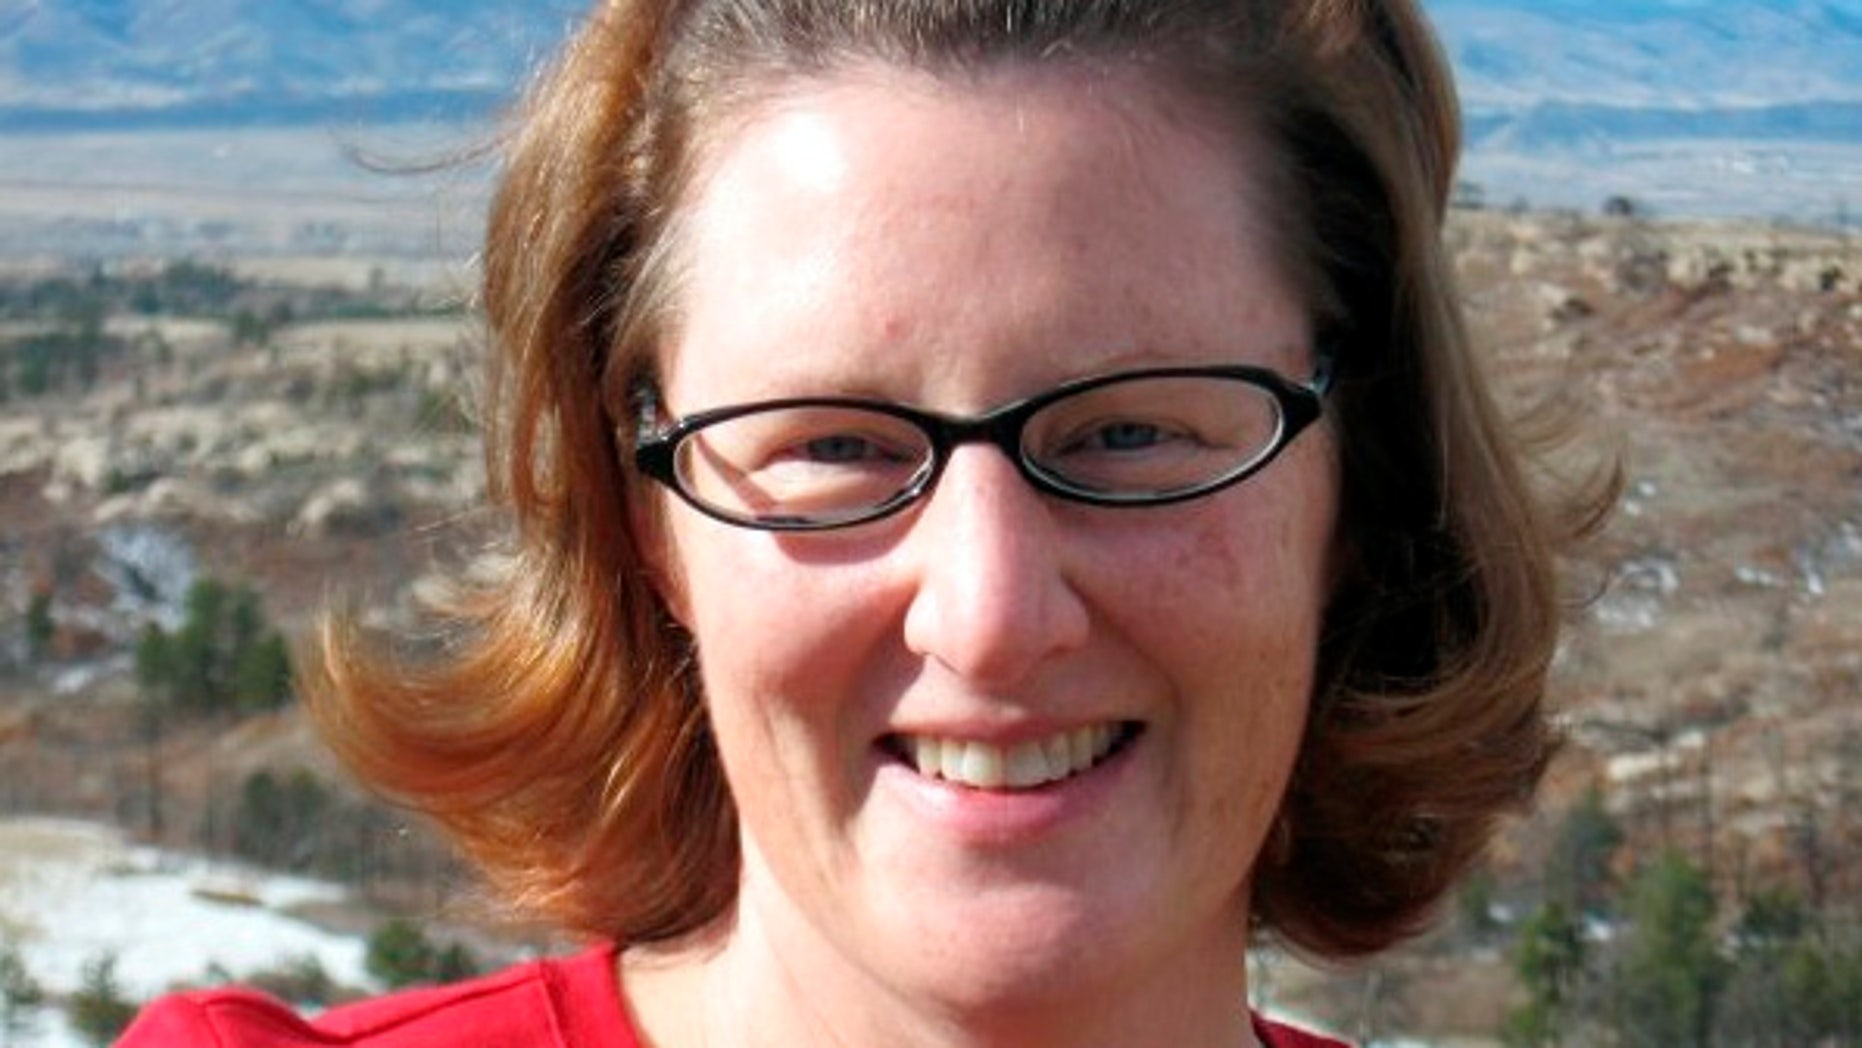 In this undated photo provided by Kristin Hopkins' family via St. Anthony Hospital shows Hopkins, 43, of Highlands Ranch, Colo. Hopkins drove off the roadway near the old mining town of Fairplay sometime after she was last seen on April 27, 2014. Authorities say at least one motorist hiked down from Red Hill Pass on U.S. Highway 285 and alerted authorities on Sunday, May 4, that there was a body inside the car. Rescuers found Hopkins alive, conscious and coherent — but critically injured and extremely dehydrated. (AP Photo/Kristin Hopkins' family via St. Anthony Hospital)